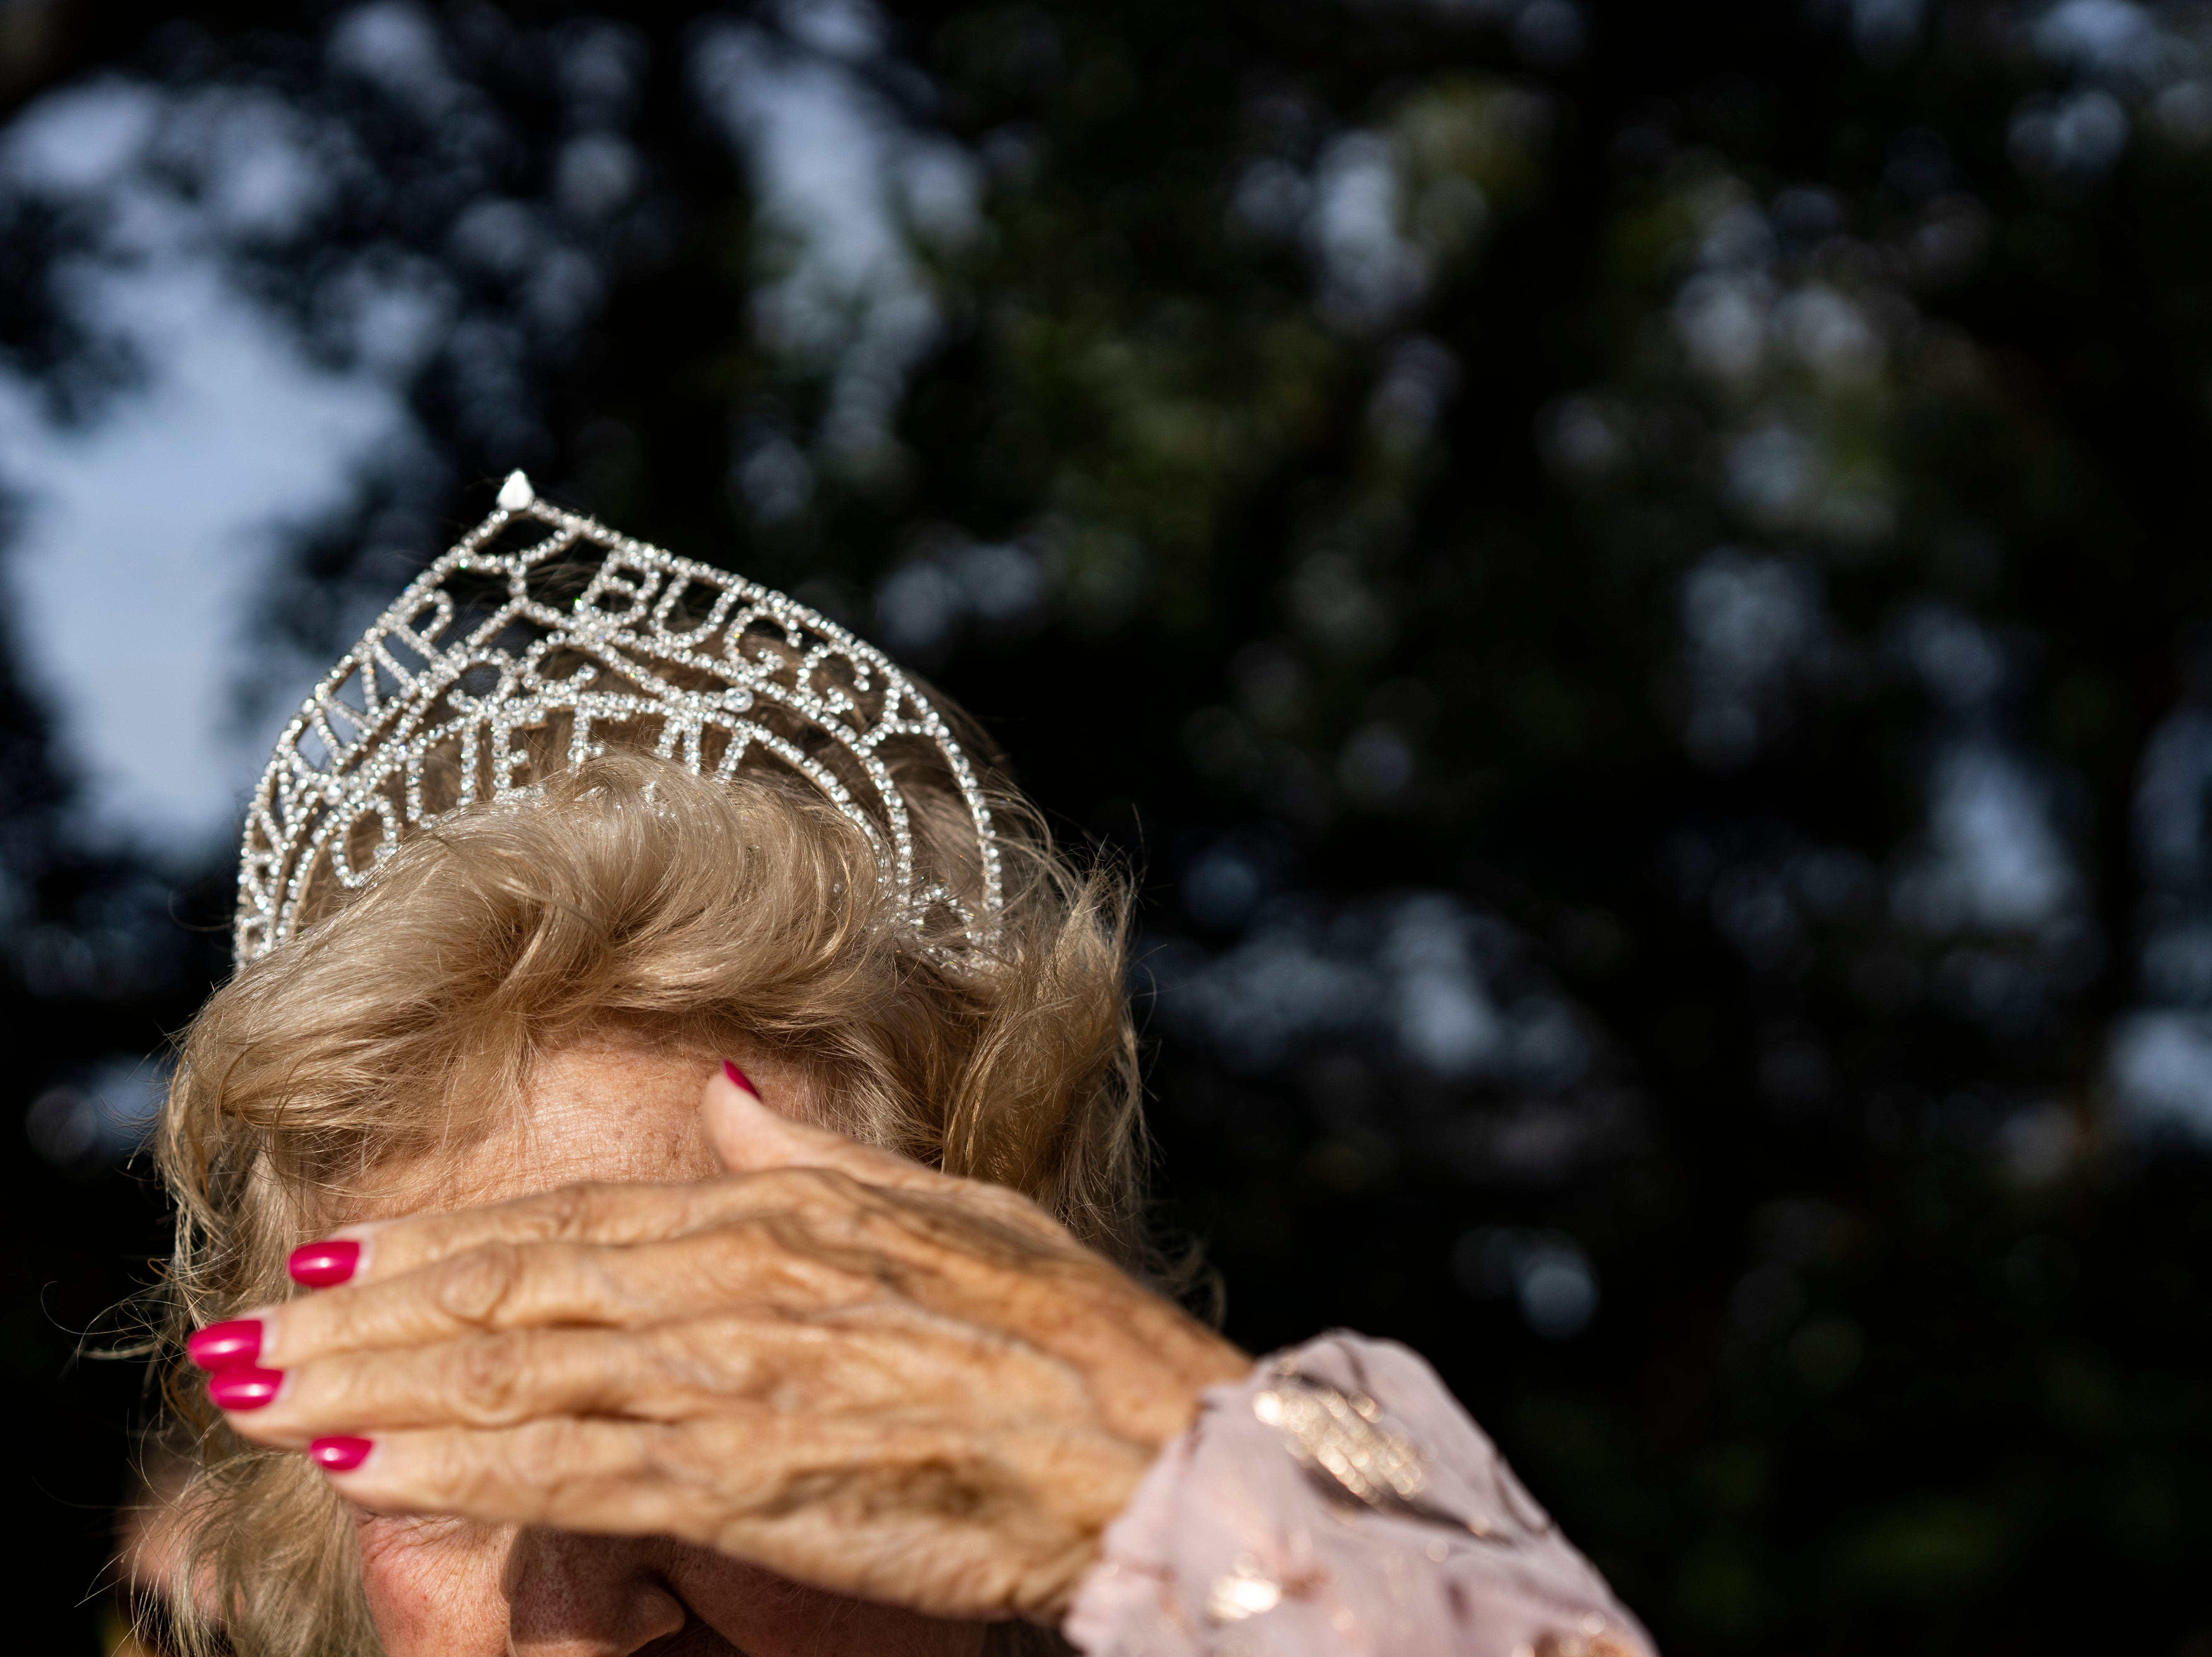 Dolly Scott, 83, covers her eyes from the sun's glare while waiting for the 70th annual Swamp Buggy Parade to start Saturday morning, Nov. 3, 2018. She was crowned Swamp Buggy Queen in 1966. She's one of nearly 70 queens part of swamp buggy history. Saturday's parade featured past Swamp Buggy Queens, Naples High School marching band, racing buggies and Swampy - the race mascot, among other things.